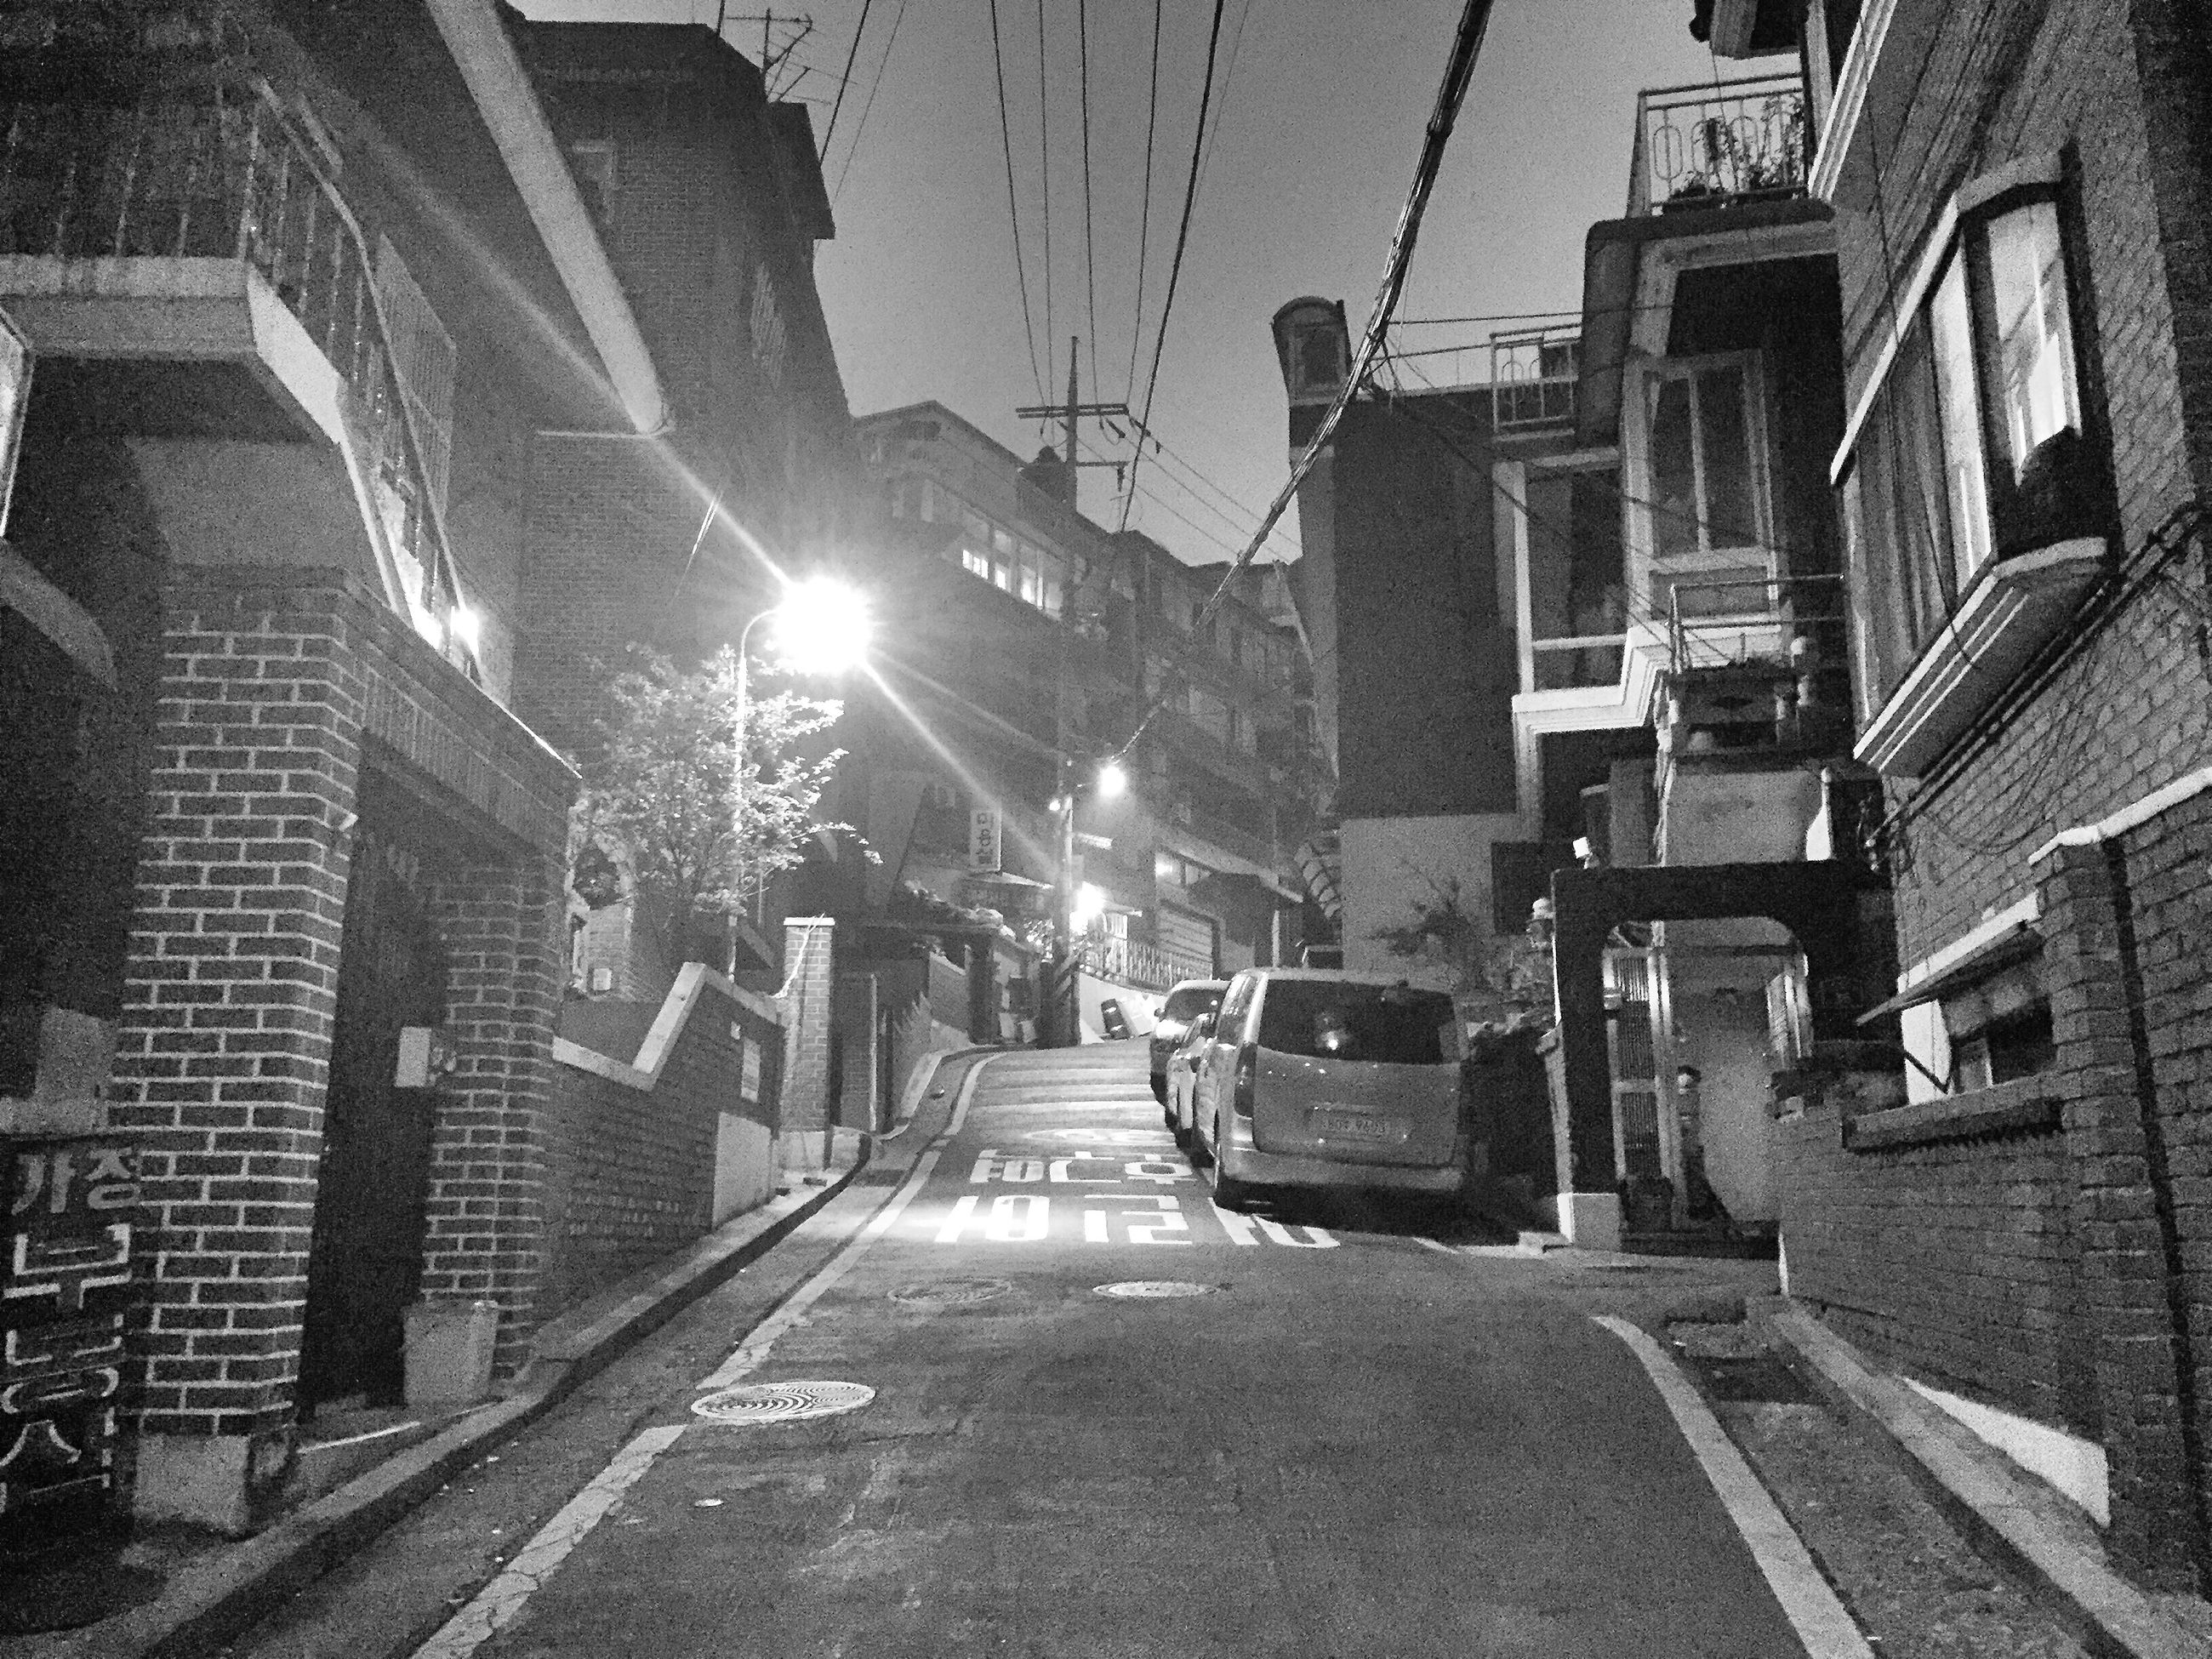 building exterior, architecture, built structure, the way forward, street, city, transportation, residential building, residential structure, diminishing perspective, car, road, building, vanishing point, land vehicle, city street, city life, mode of transport, sky, street light